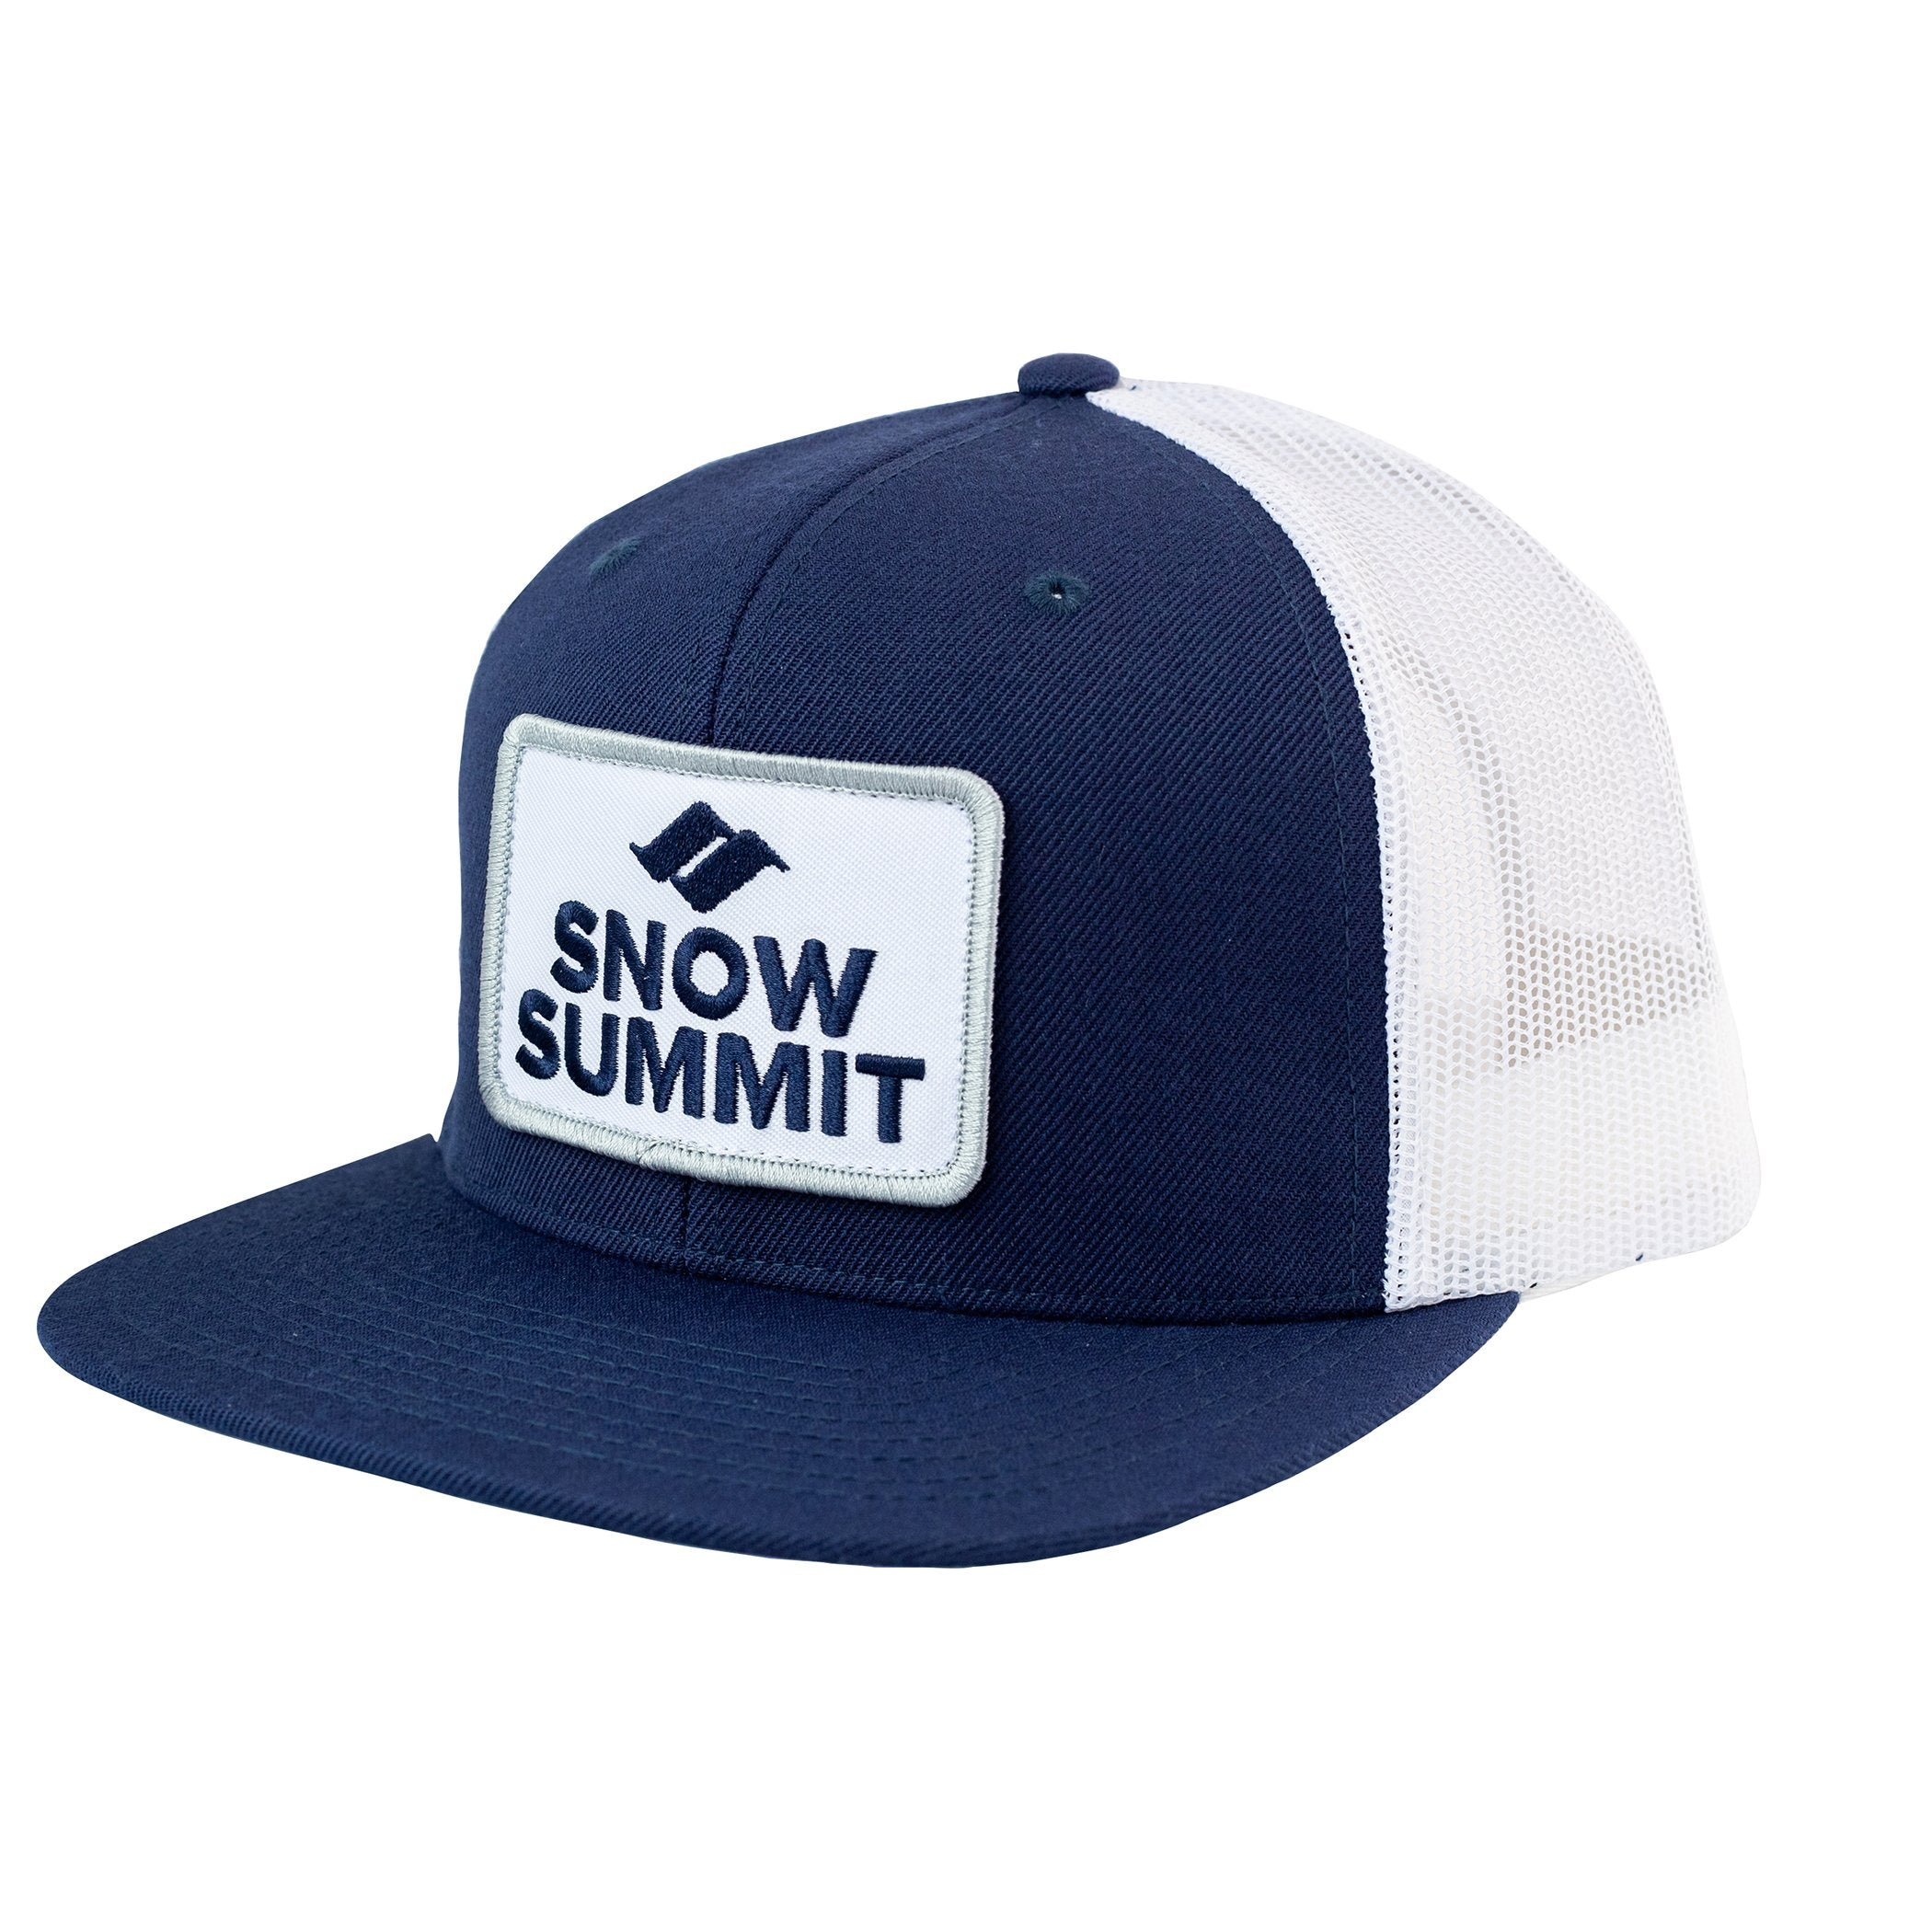 Navy/White Snow Summit Flat Bill Trucker Hat with Emboidered Patch Logo